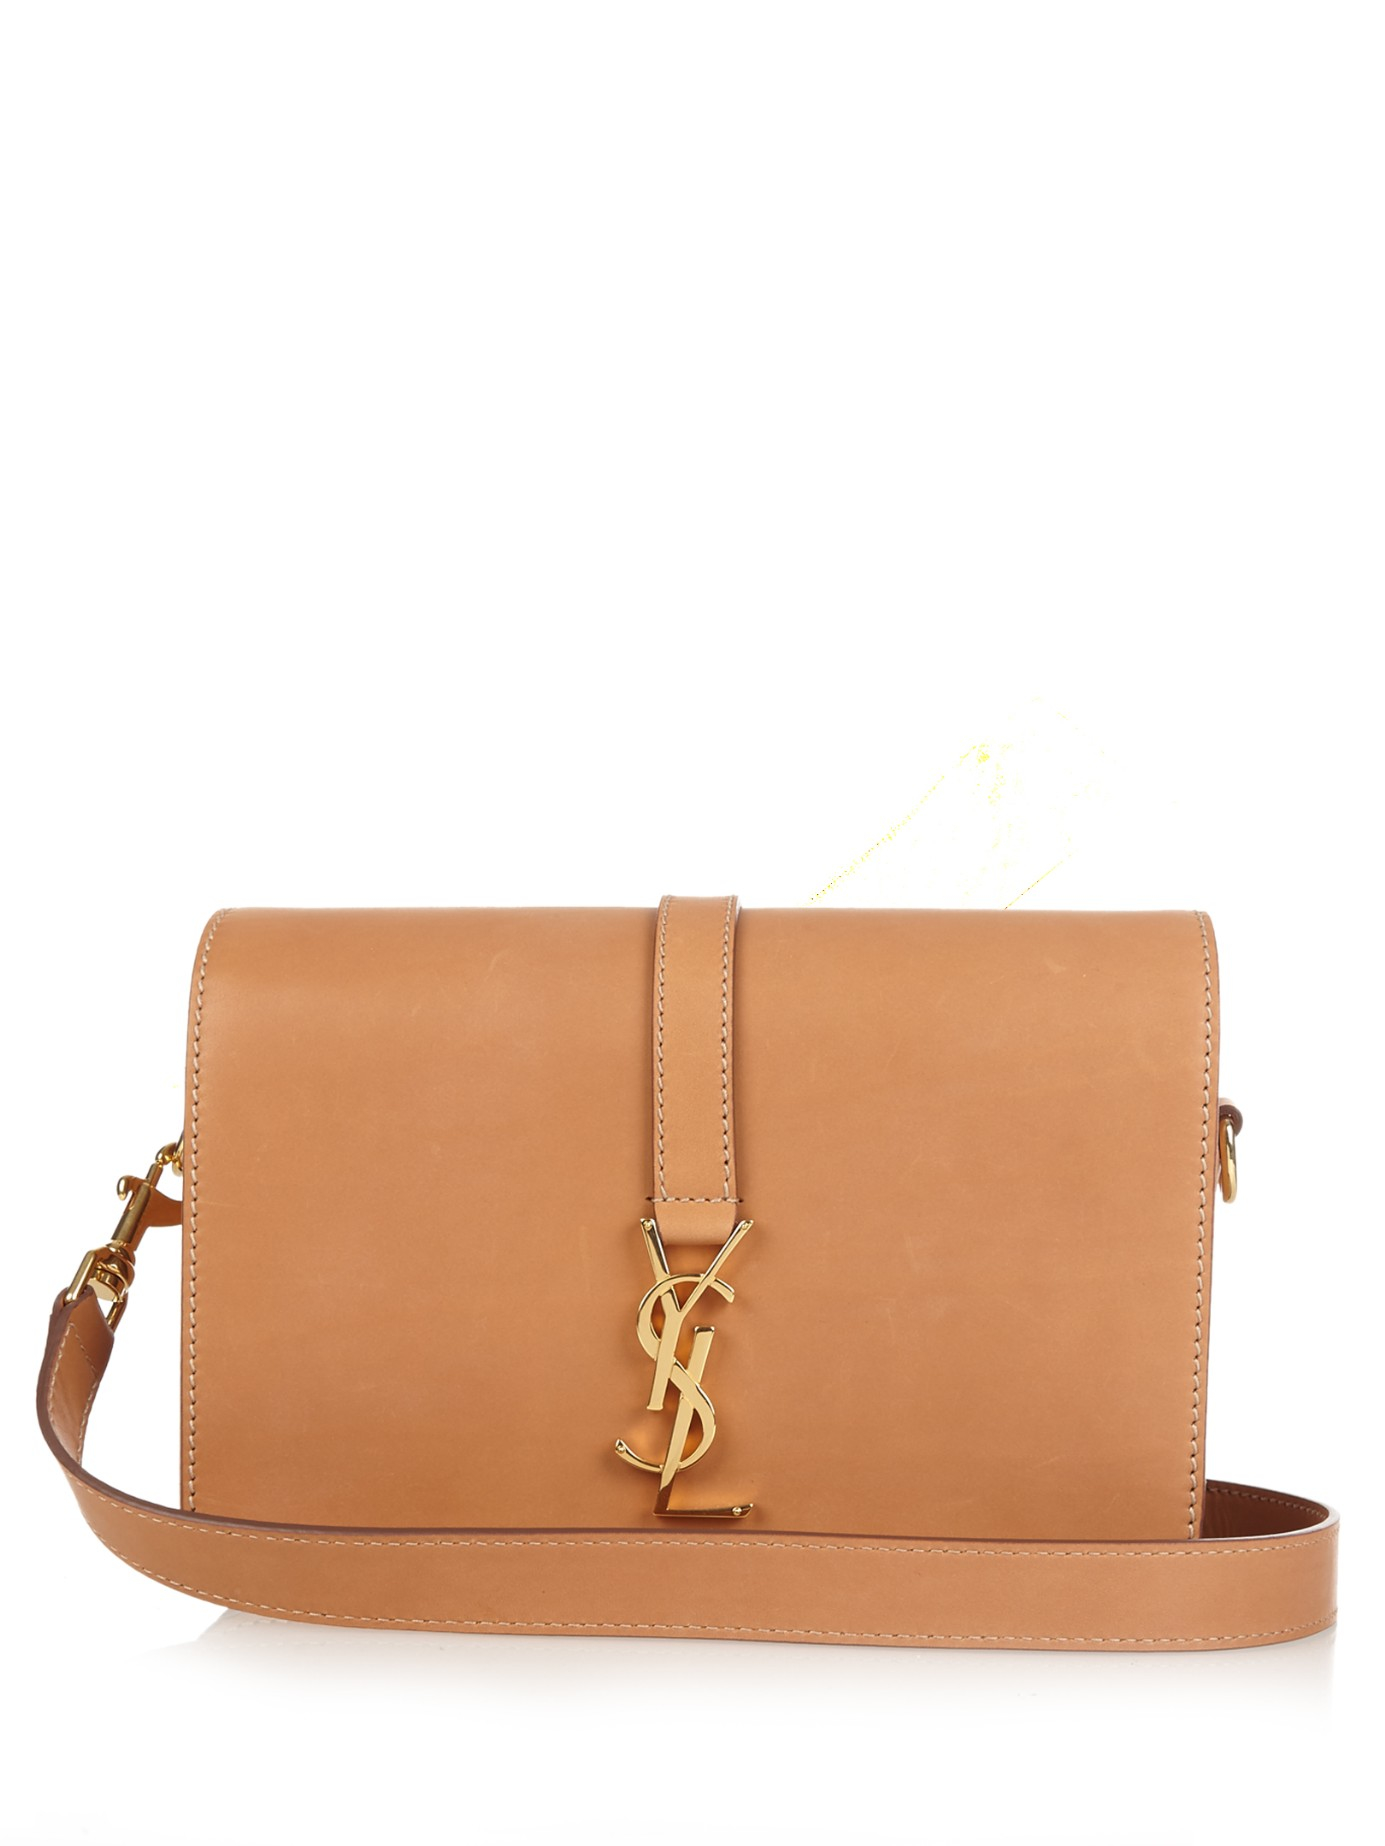 b63ce778fa Lyst - Saint Laurent Université Monogram Leather Cross-body Bag in ...